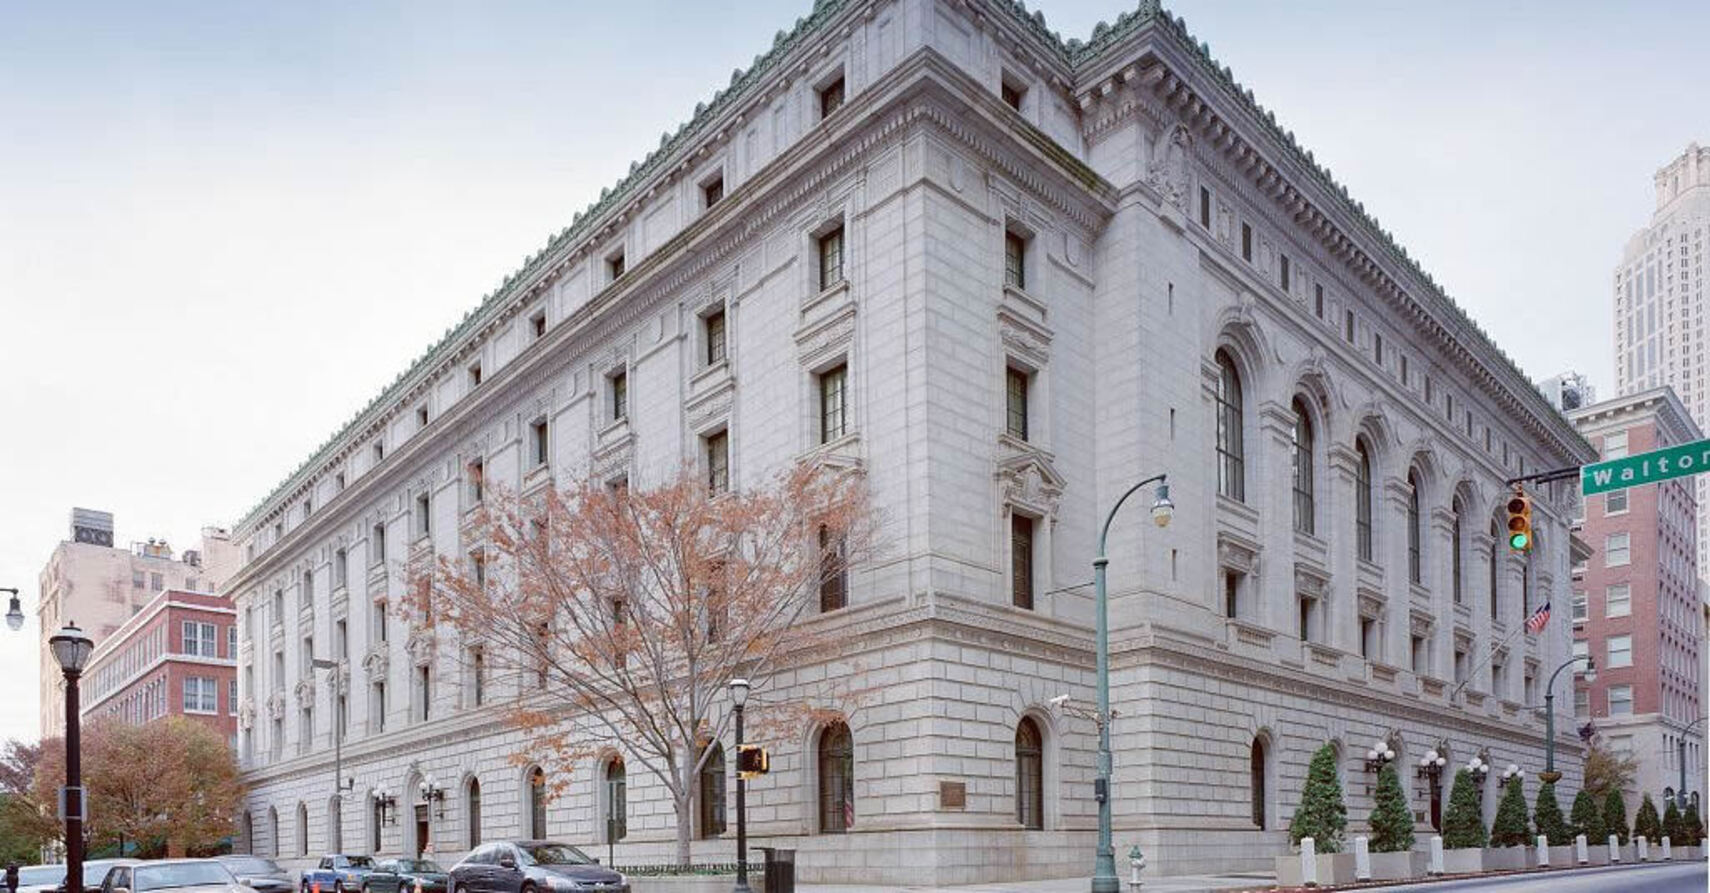 Eleventh Circuit Flips As Senate Confirms Two Trump Appointees